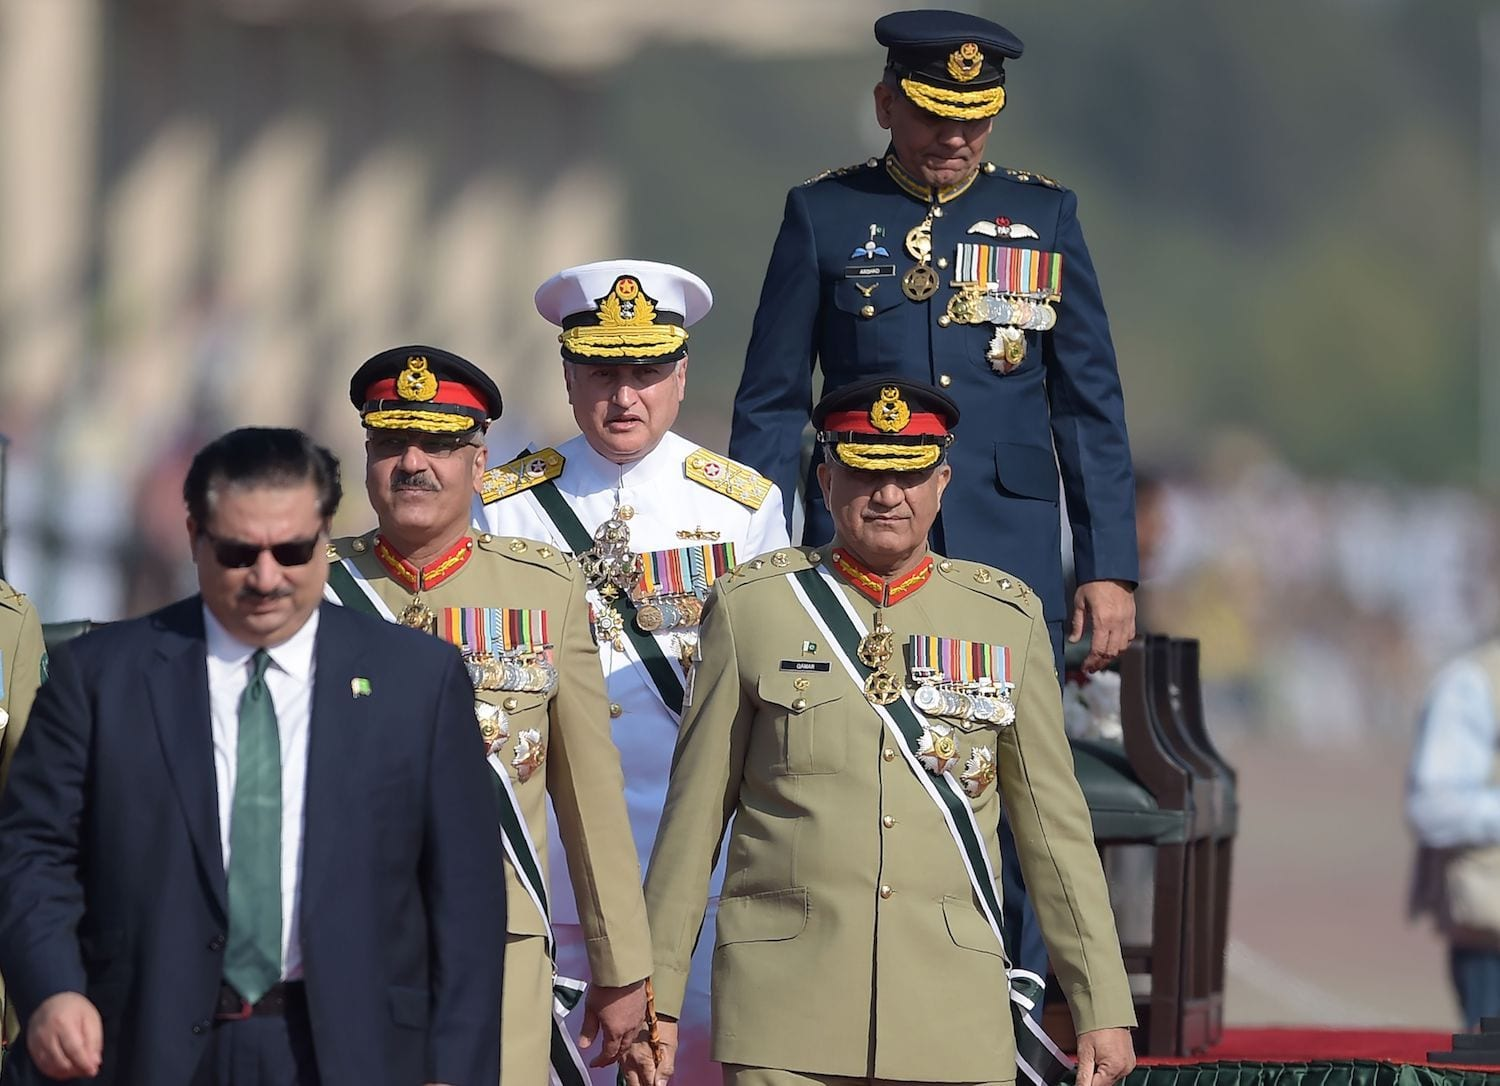 Image [Pakistani Army Chief General Qamar Javed Bajwa (2R), Pakistani Chief of Naval Staff Admiral Zafar Mahmood Abbasi (C), Pakistani Air Chief Marshal Mujahid Anwar Khan (top-R) and Pakistani Chairman of the Joint Chiefs of Staff Committee Zubair Mahmood Hayat (2L) arrive to receive Sri Lankan President Maithripala Sirisena during the Pakistan Day military parade in Islamabad on March 23, 2018. (Photo: Aamir Qureshi / AFP)